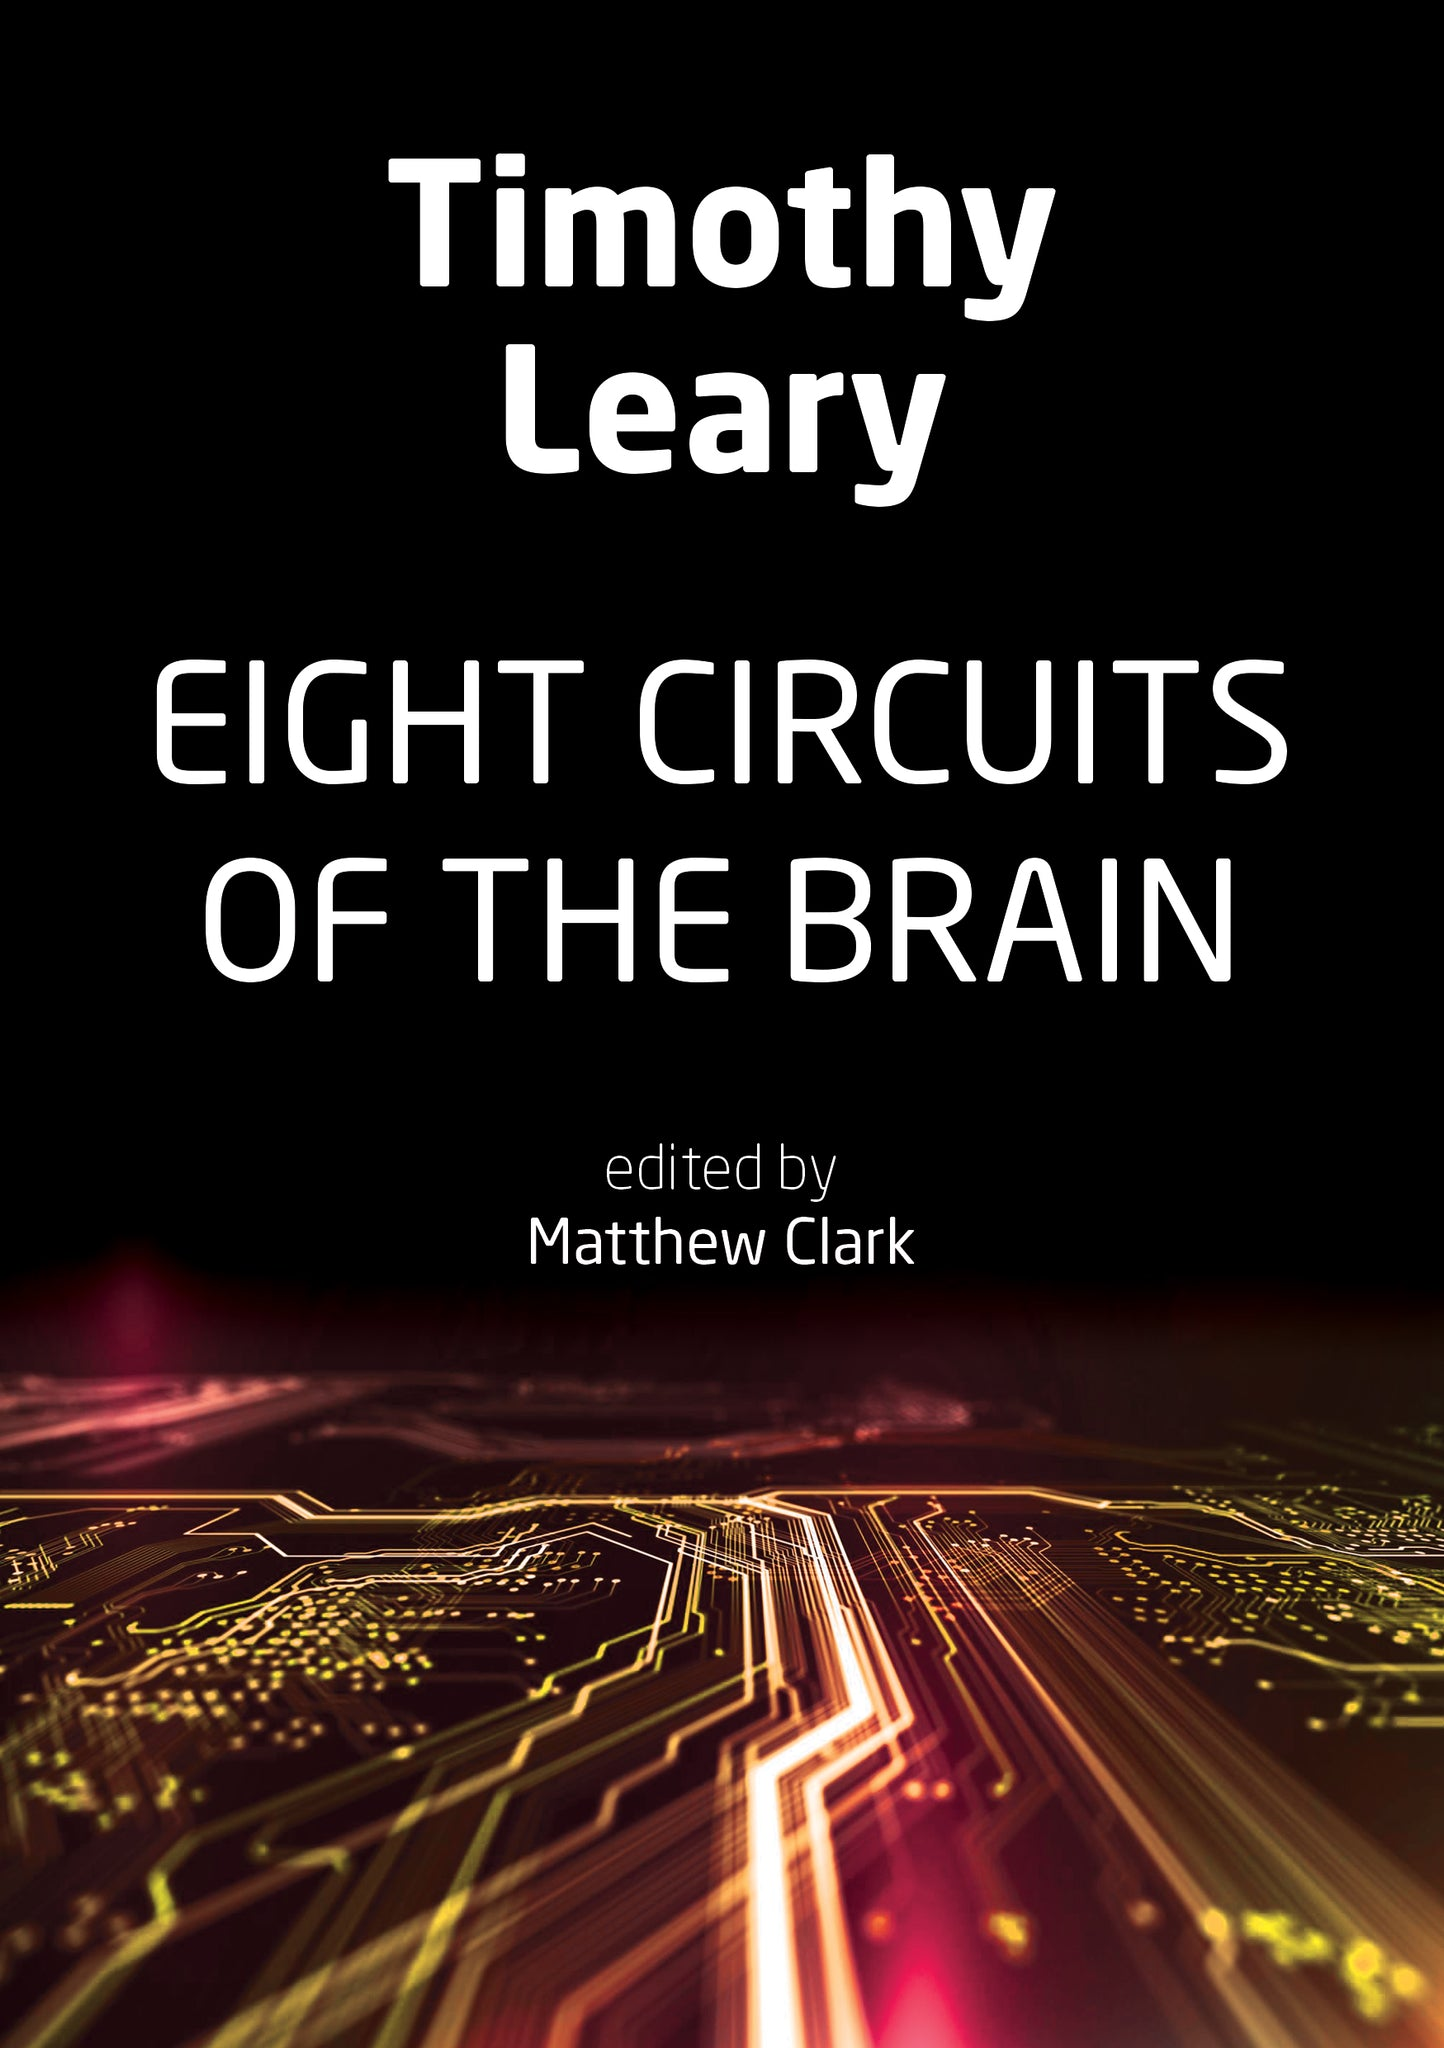 Eight Circuits of the Brain by Timothy Leary (Edited by Matthew Clark)